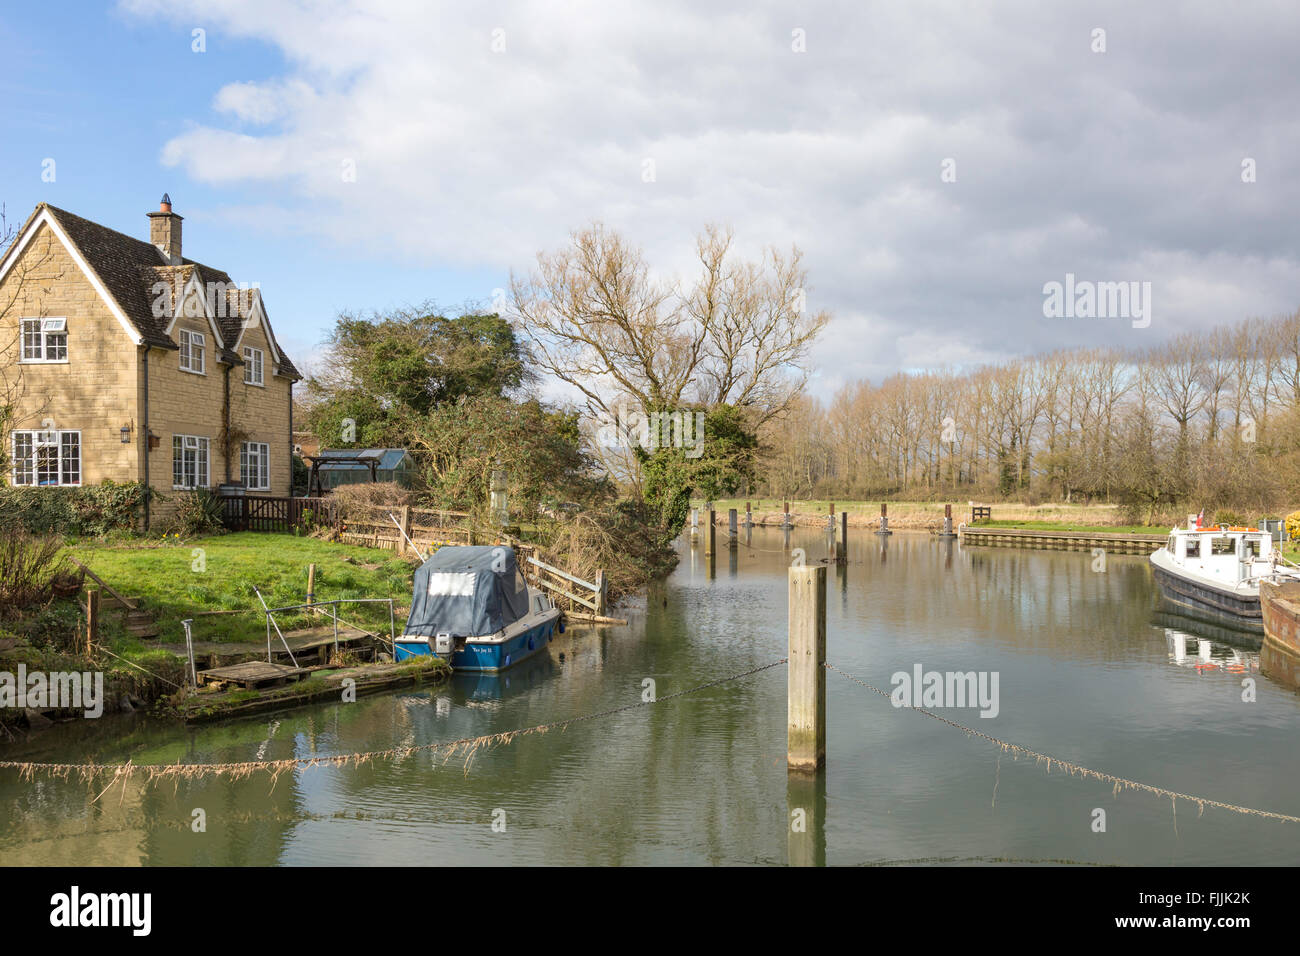 Buscot Lock and weir on the River Thames, Oxfordshire, England, UK - Stock Image